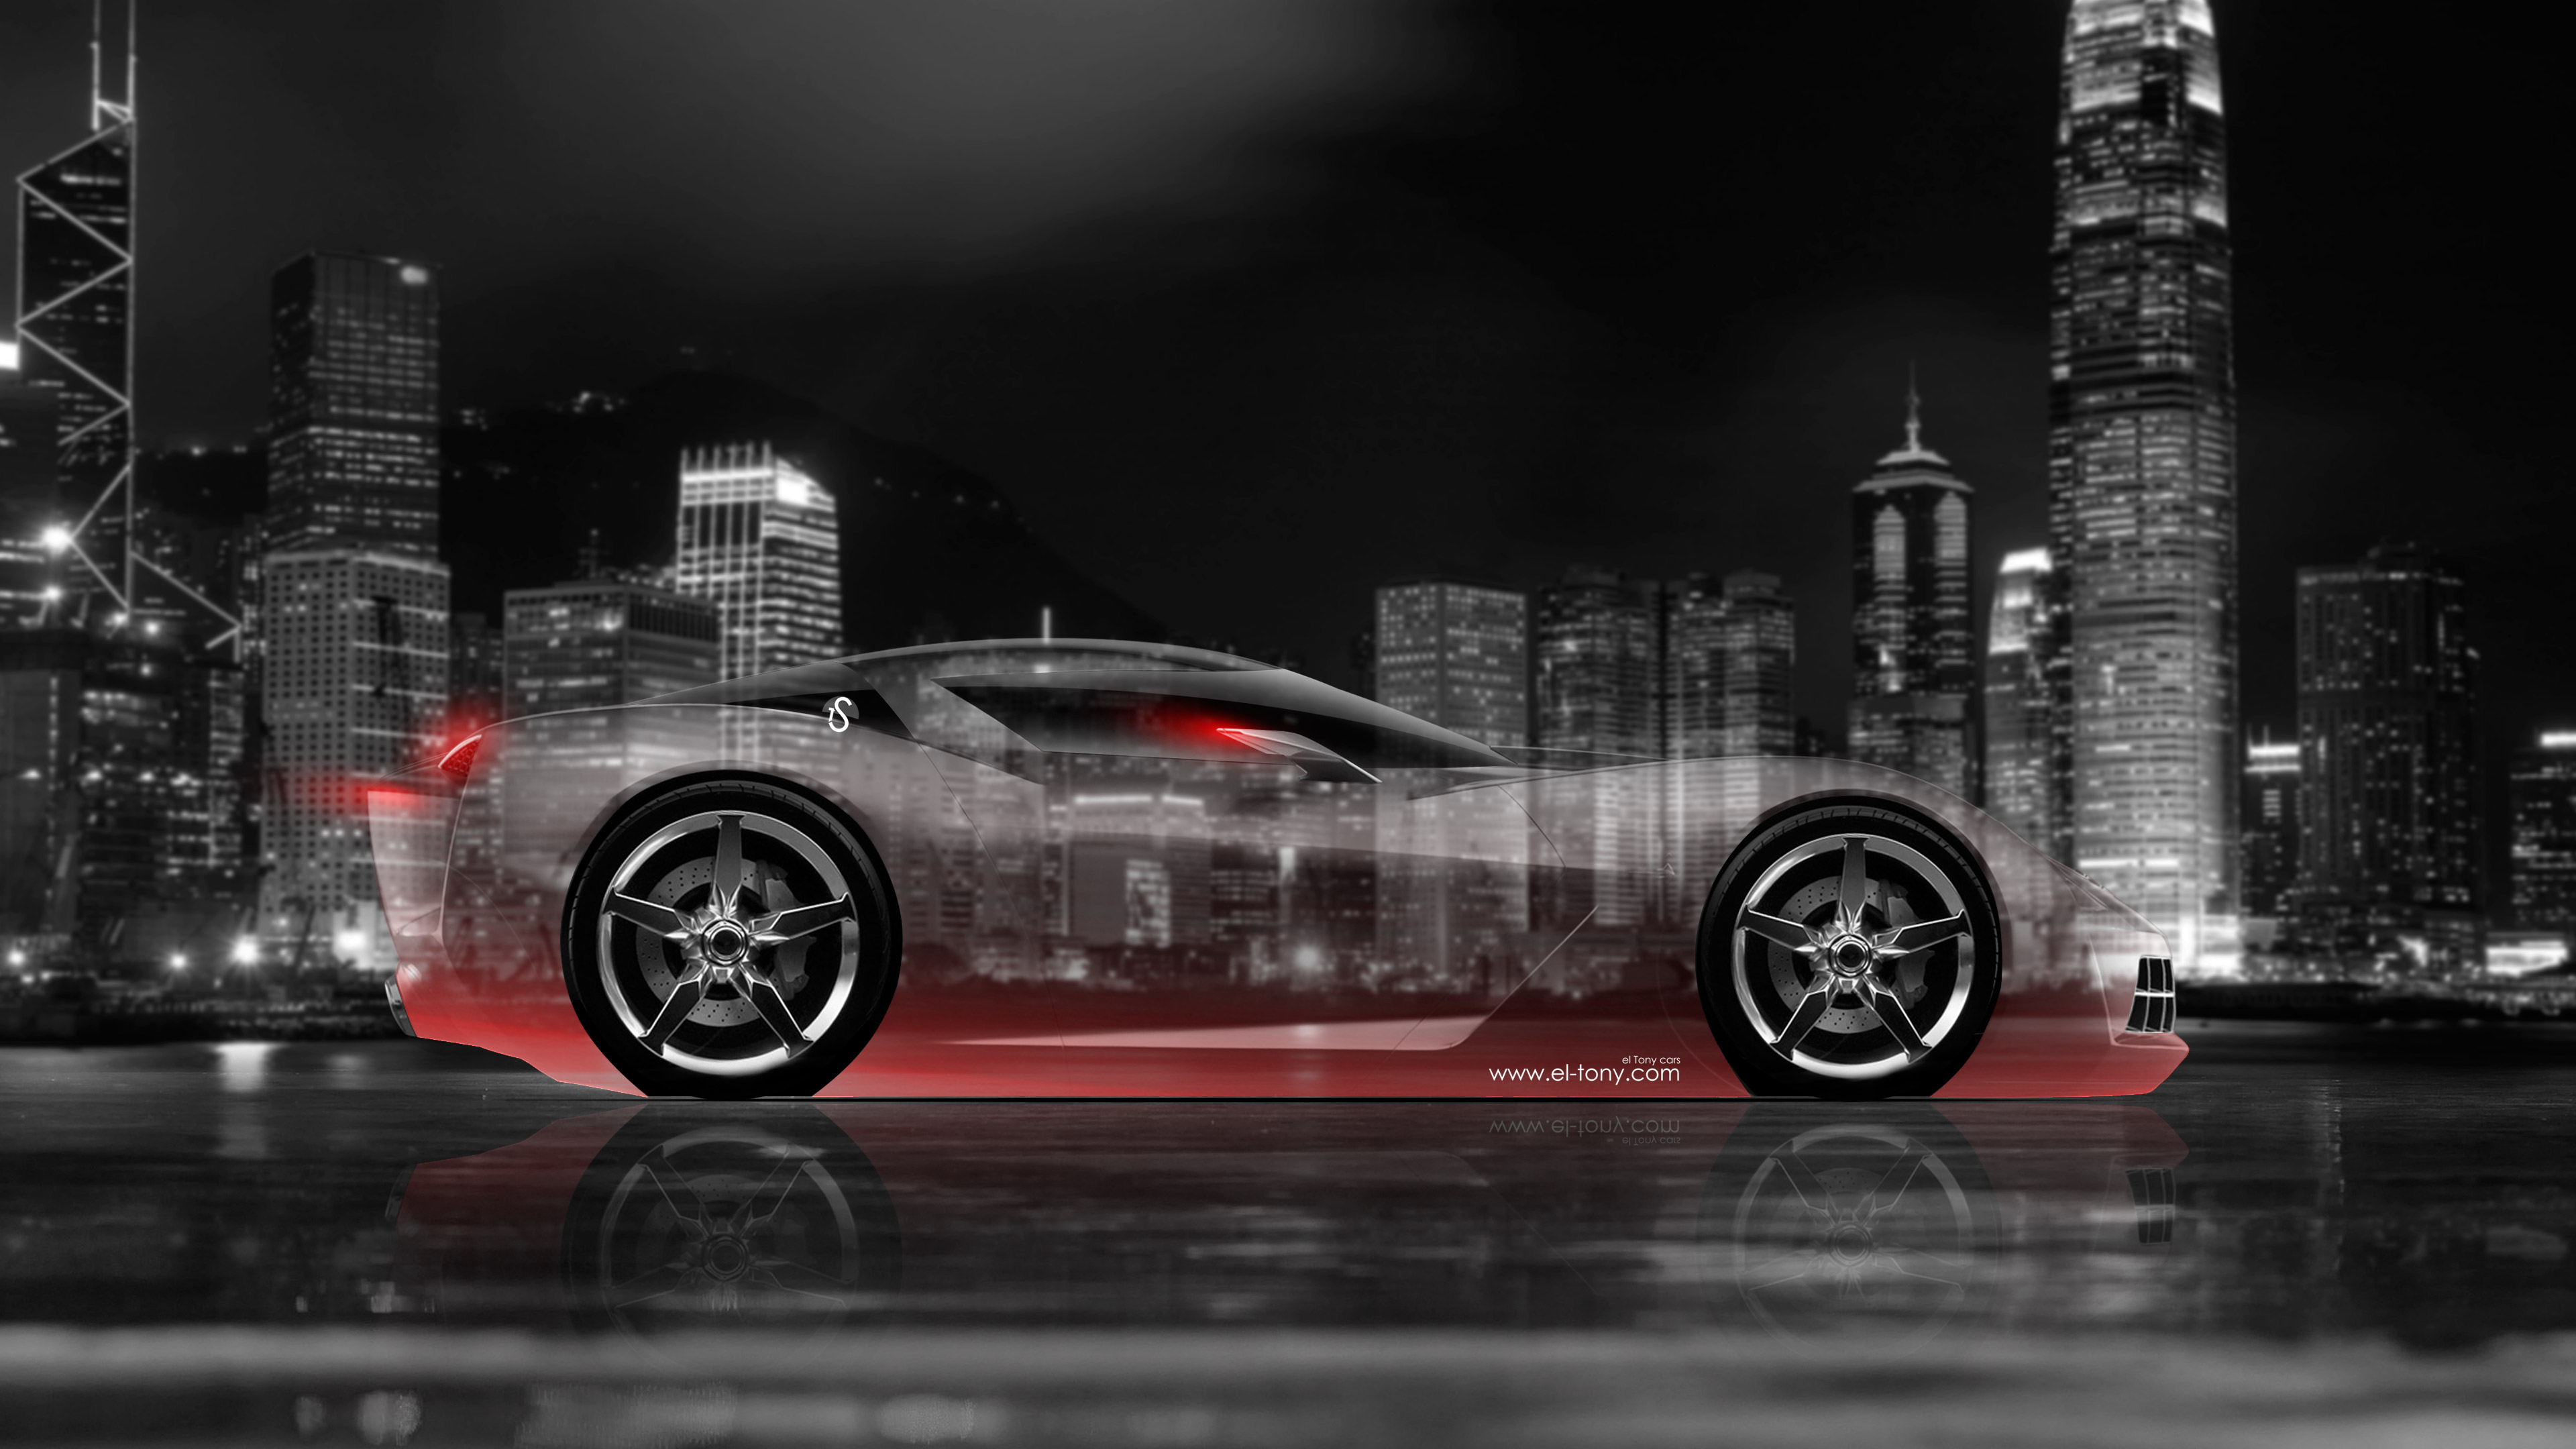 4k Chevrolet Corvette Stingray Side Crystal City Car 2014